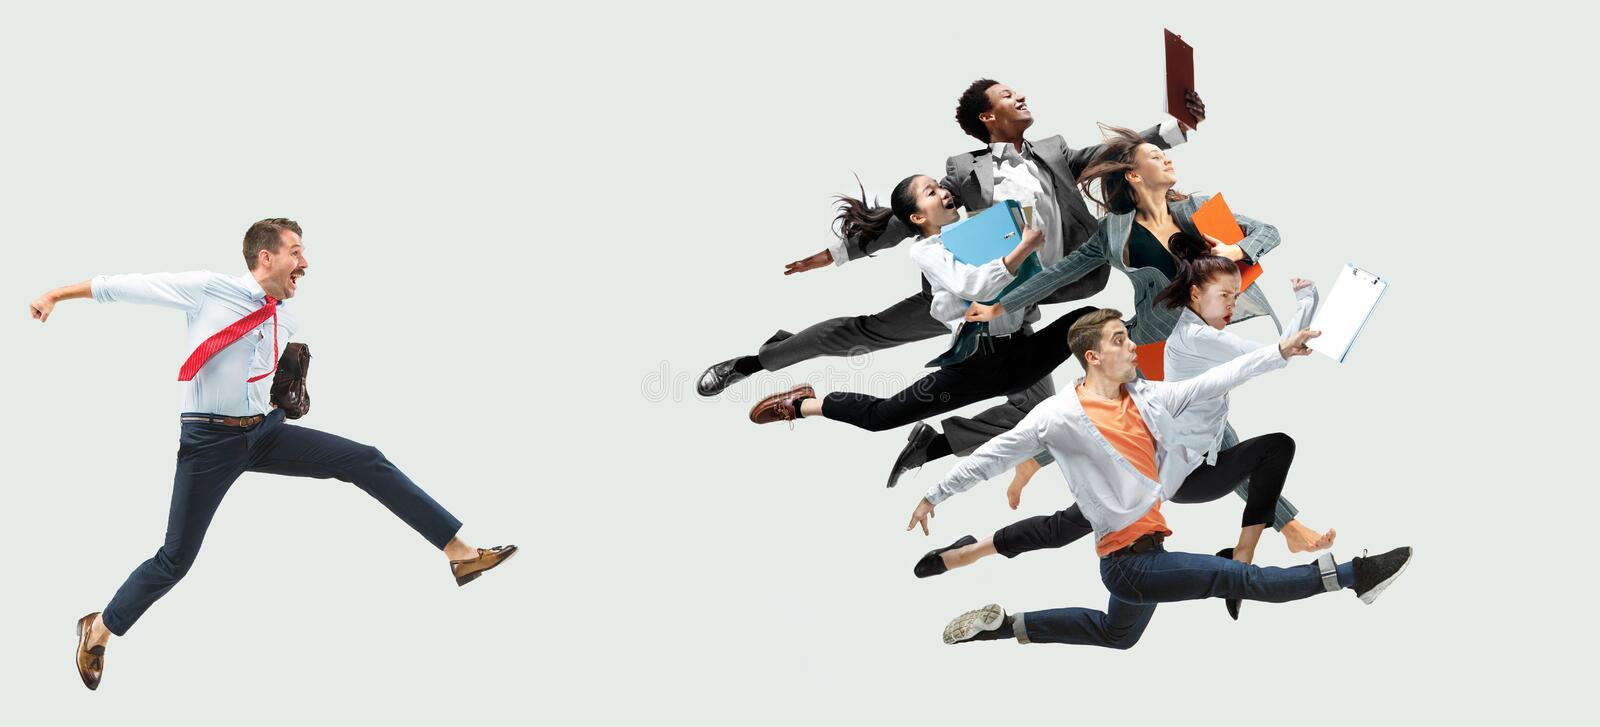 Office worker s or ballet dancers jumping on white background royalty free stock photo